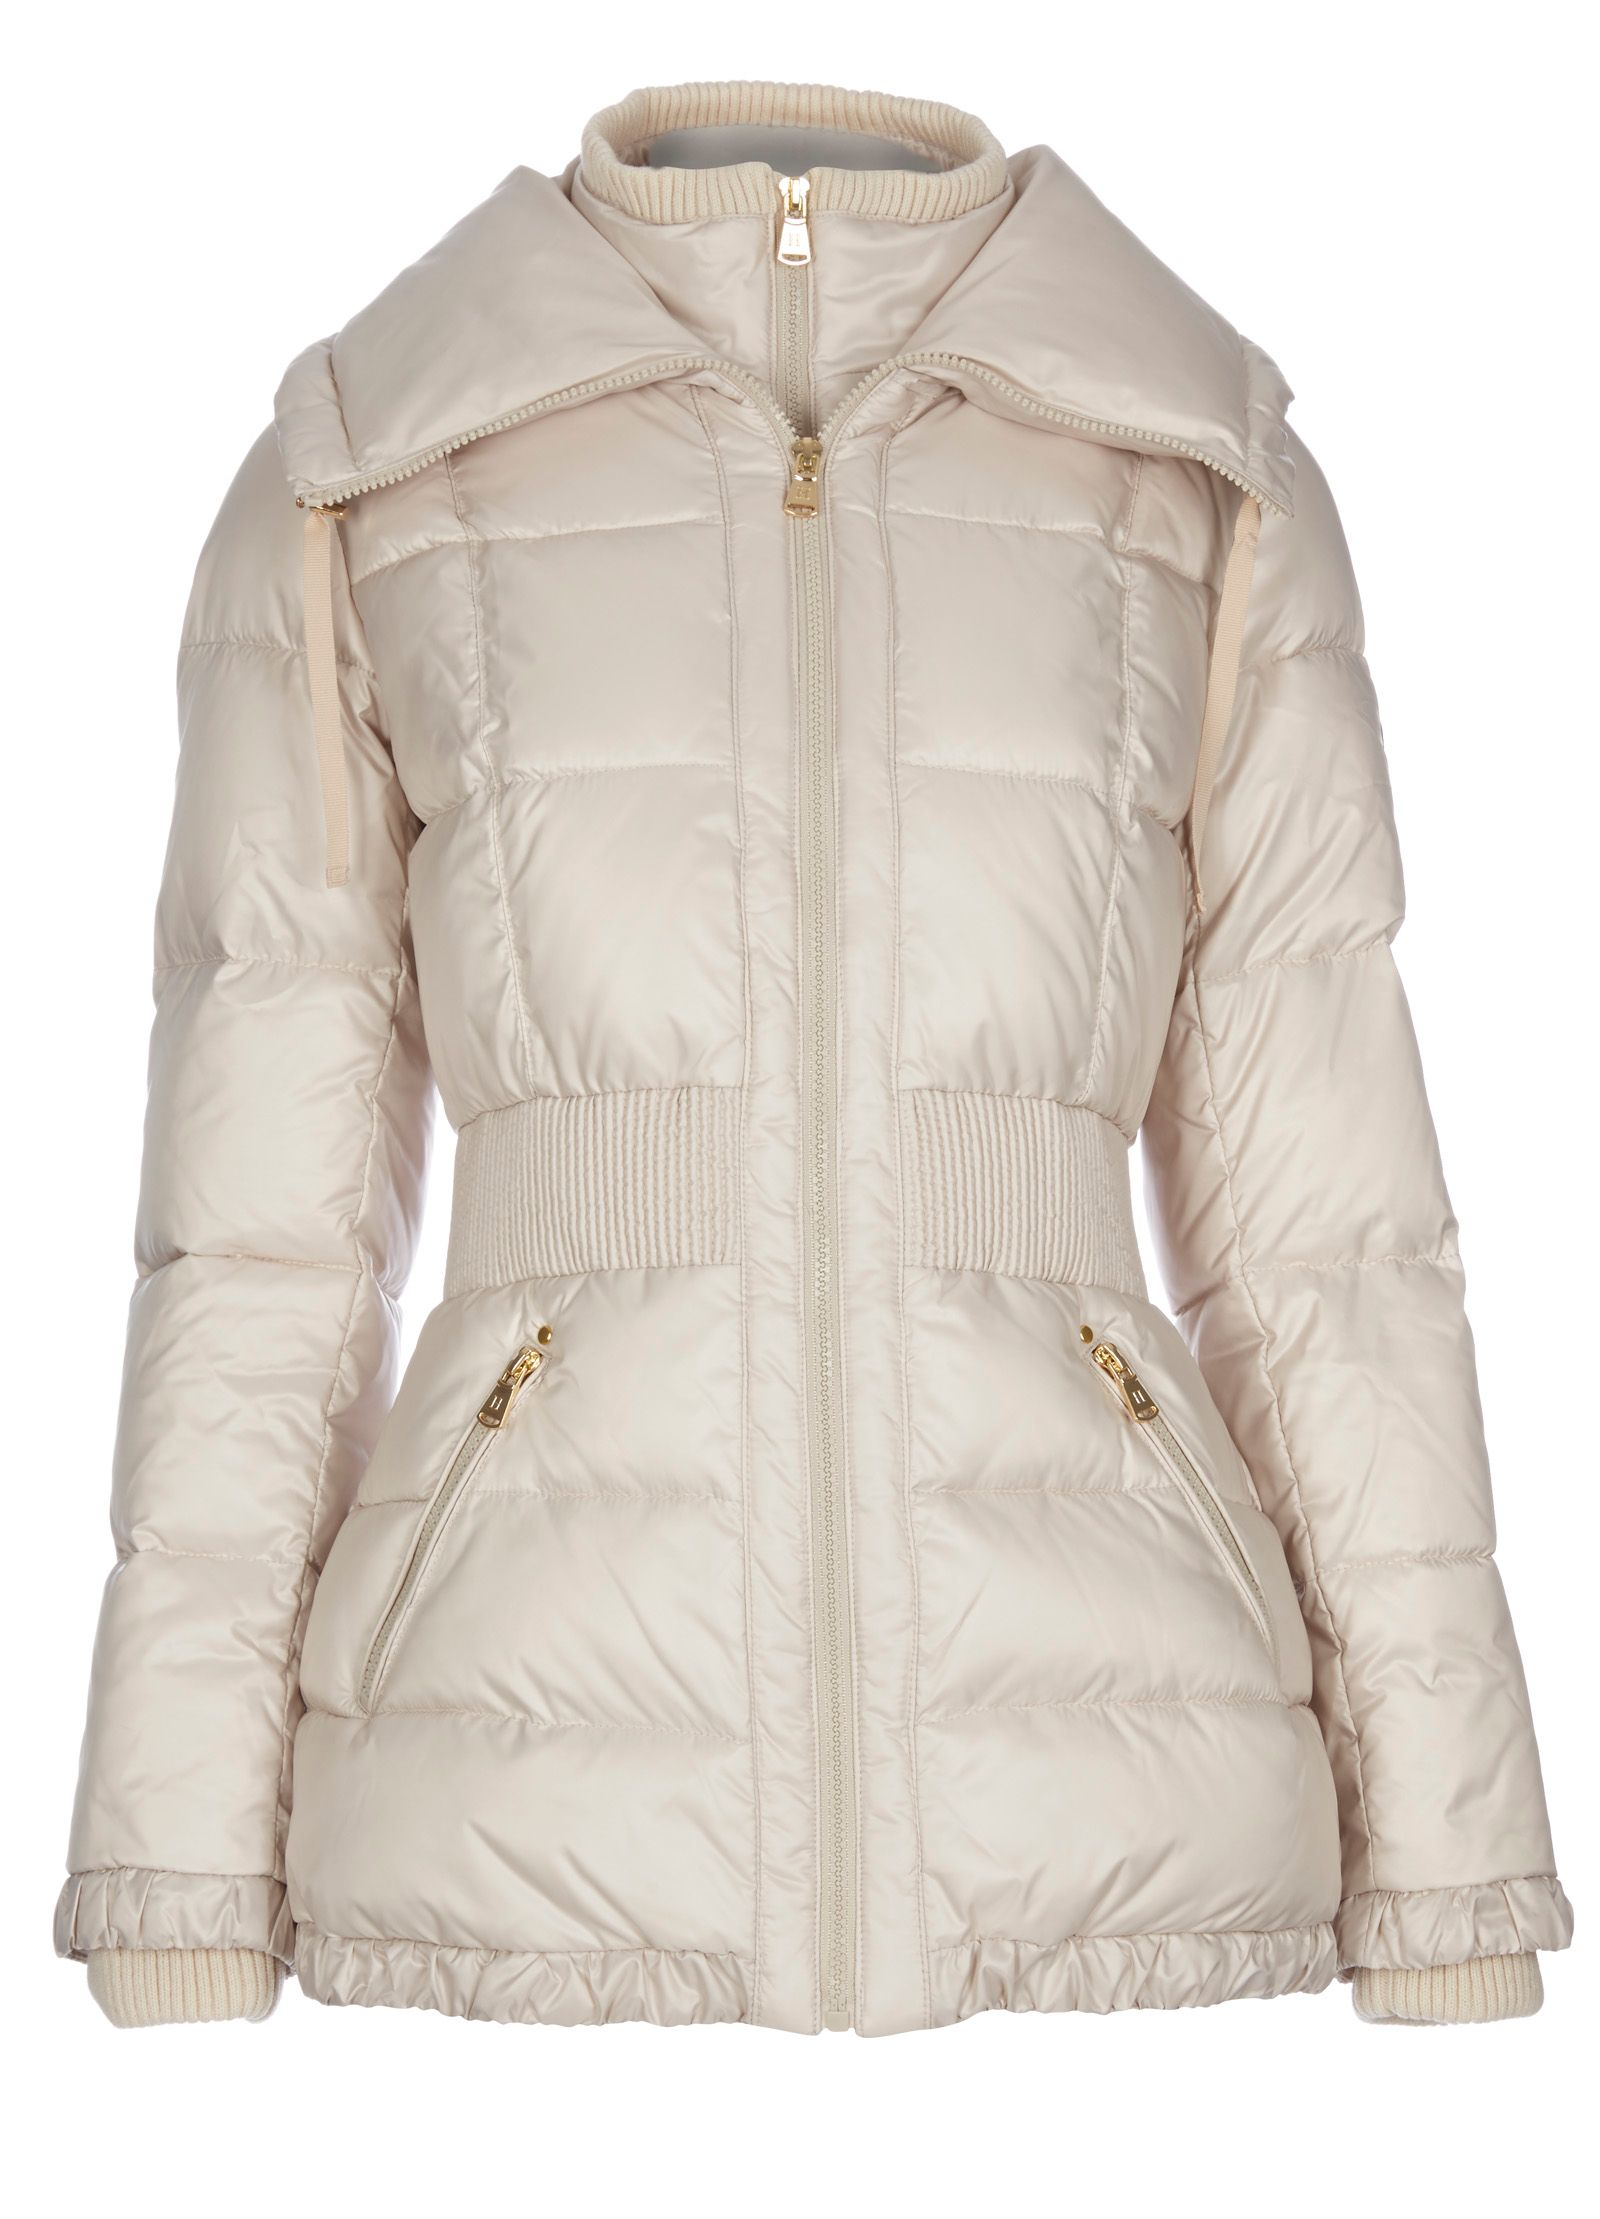 Halifax traders Quilted Jacket With Oversized Collar in